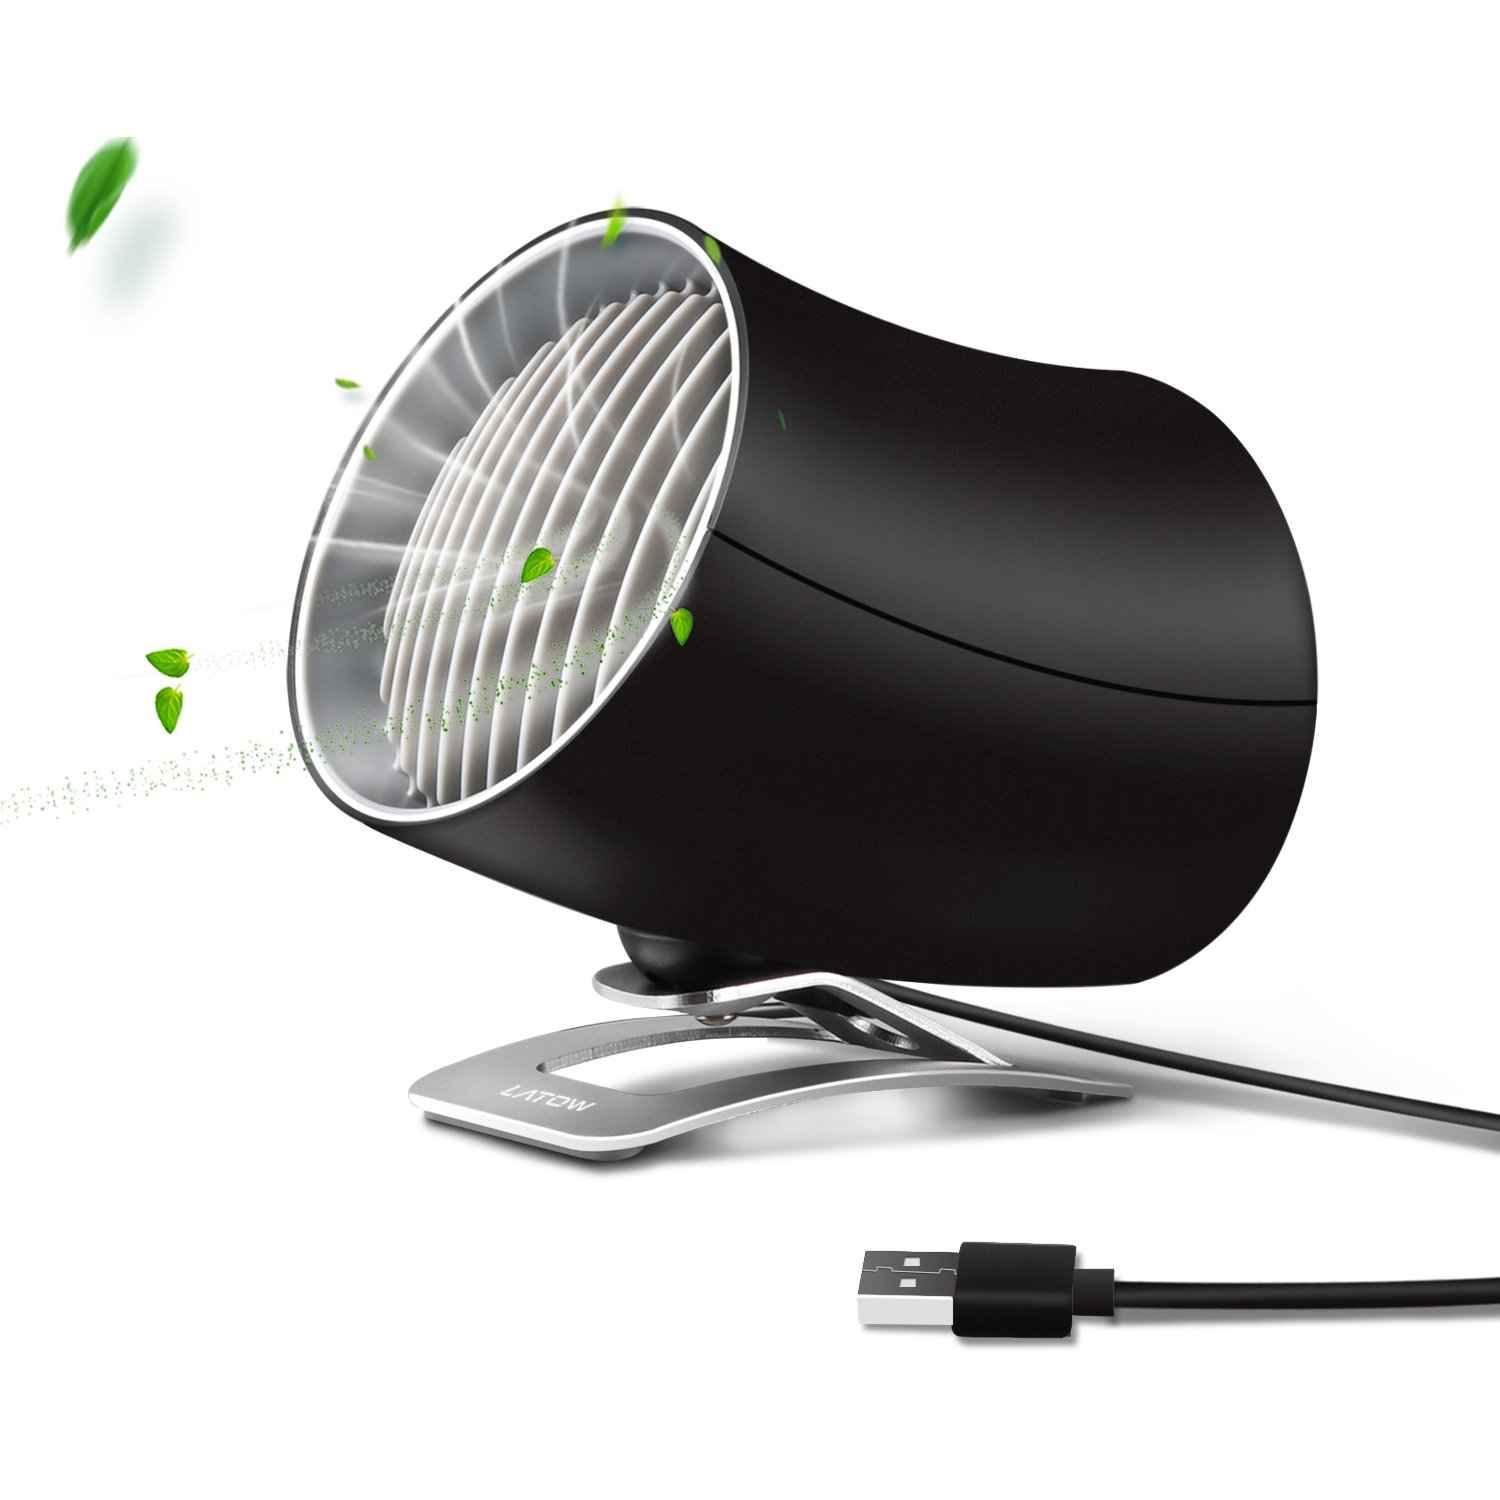 Mini USB Table Fan, Portable Personal Desk Fan with Two Speeds Adjustable Touch Control, PC/Laptop Cooling Fan for Home, Office, Travel - Dual Motor Driver, Double Blades, Color Black